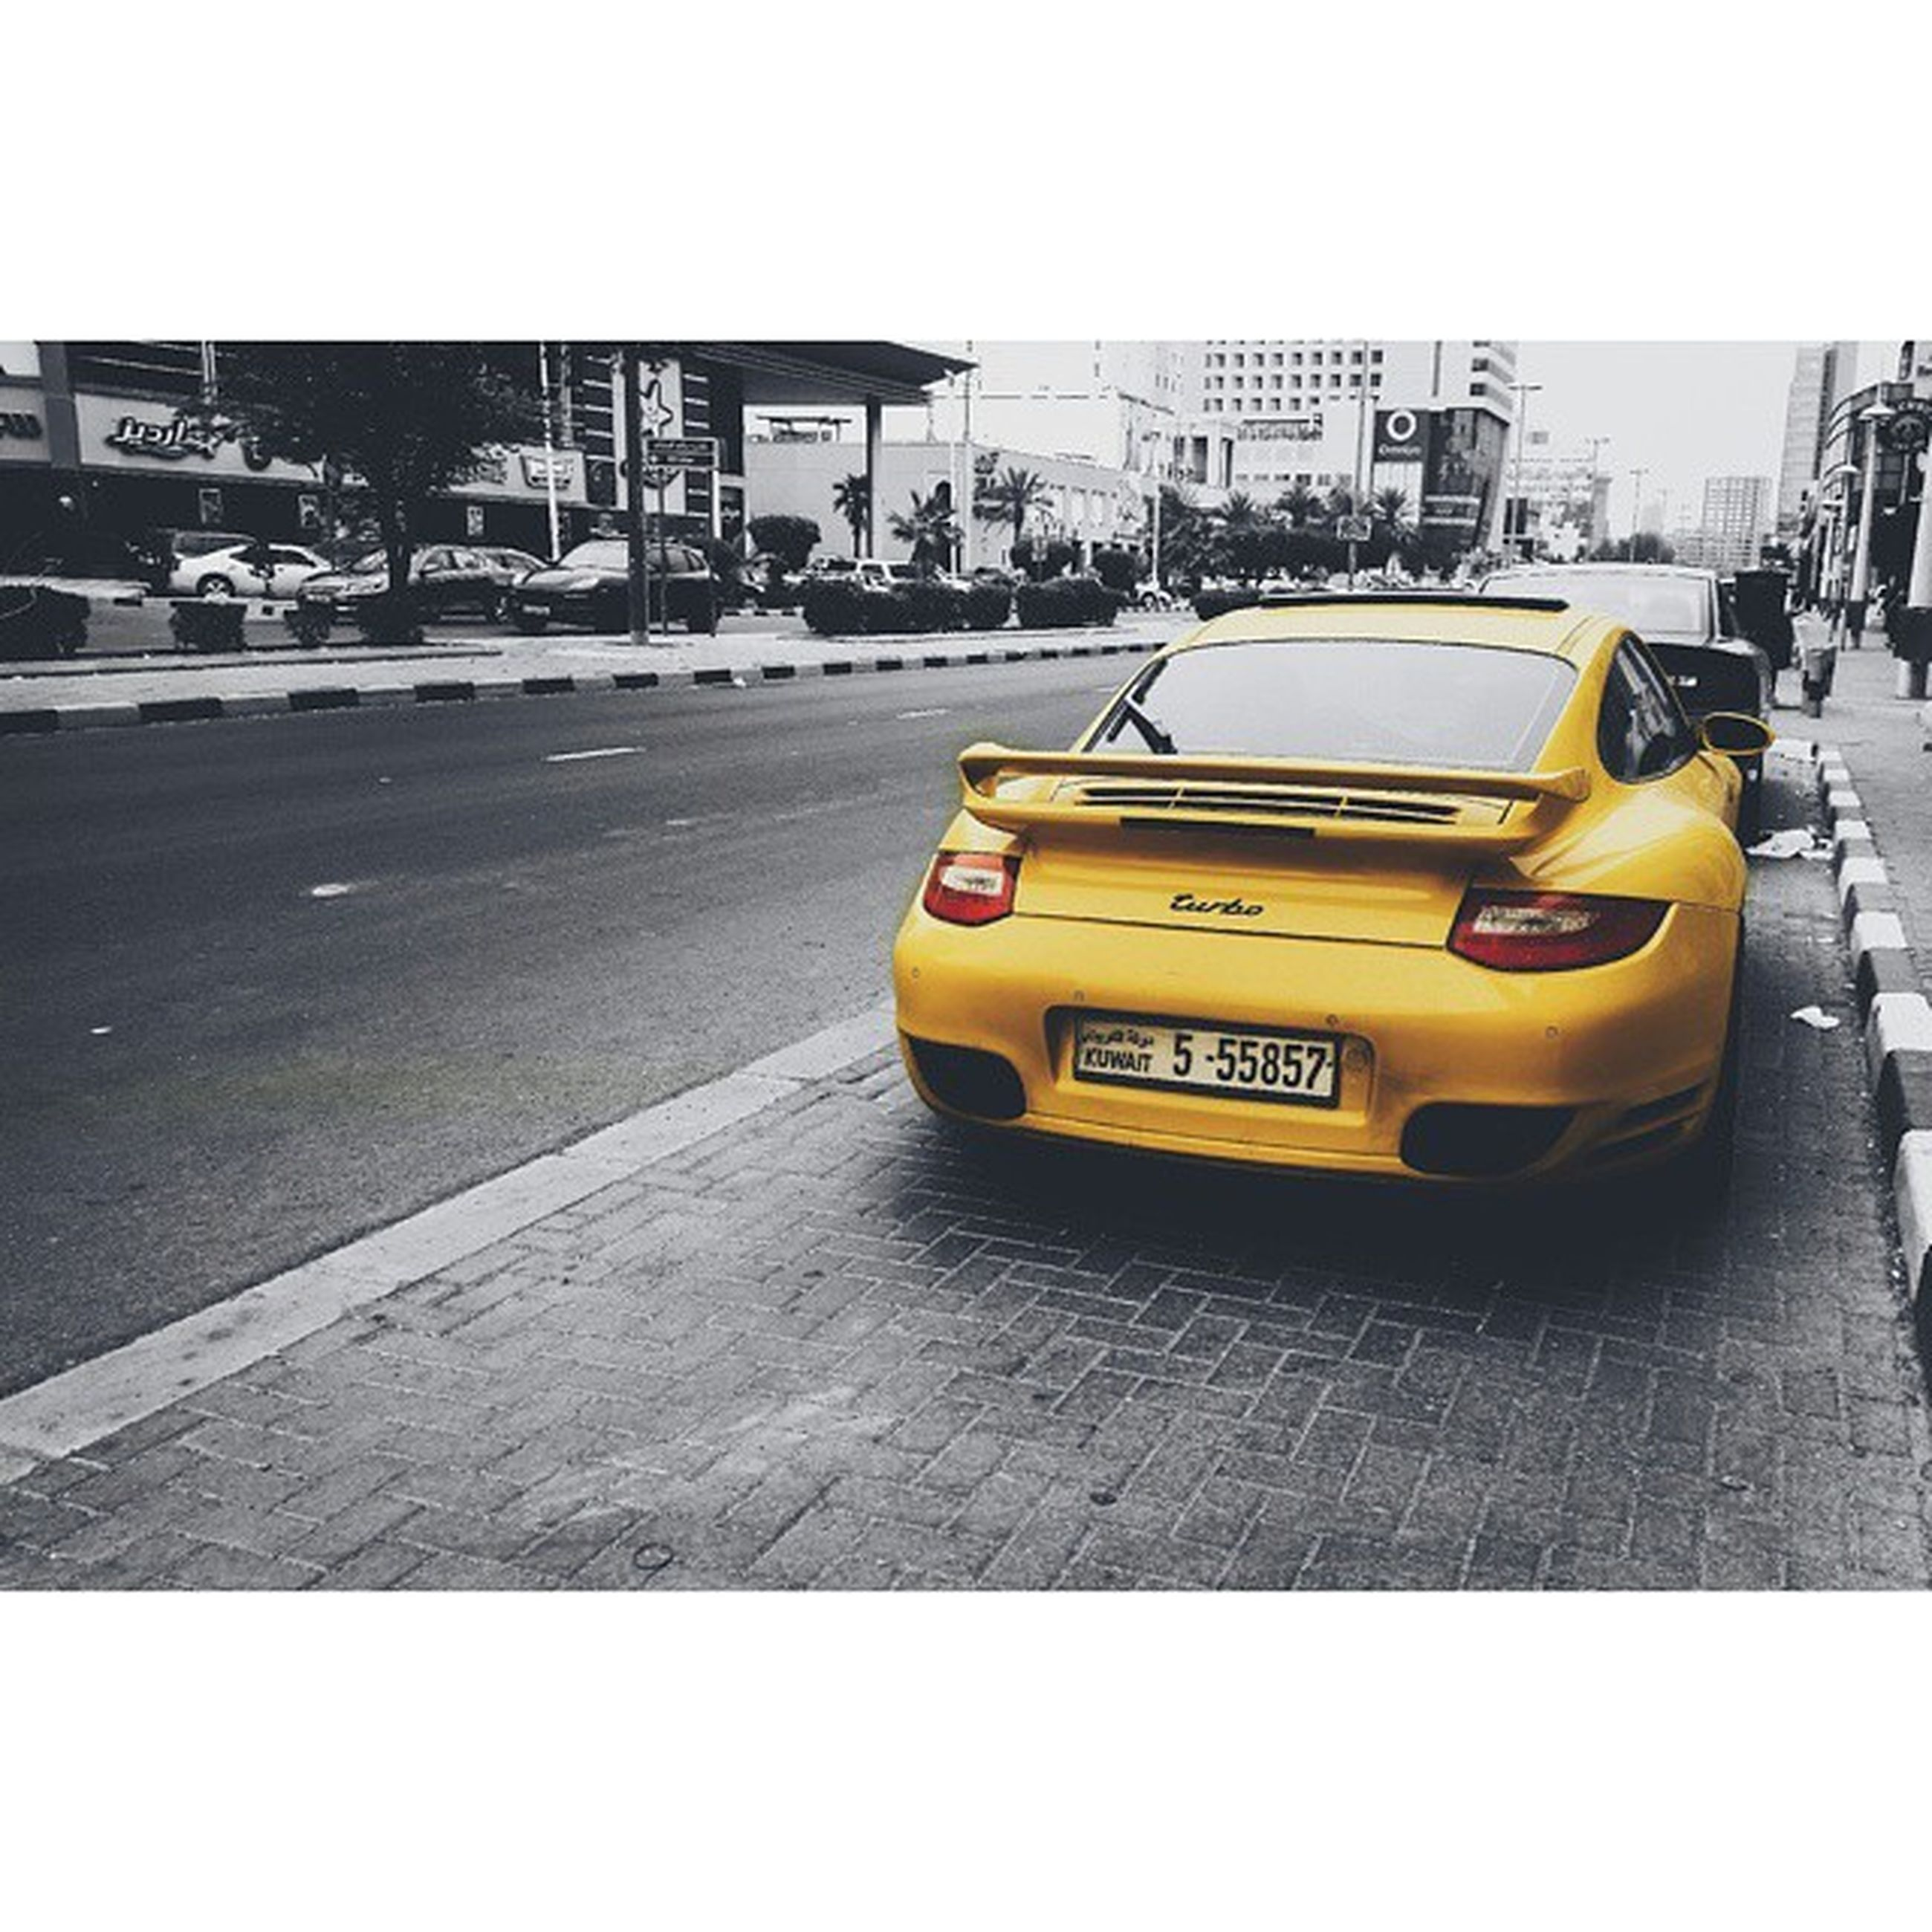 transportation, mode of transport, car, land vehicle, transfer print, city, street, yellow, building exterior, architecture, auto post production filter, traffic, road, built structure, city life, text, city street, travel, public transportation, road marking